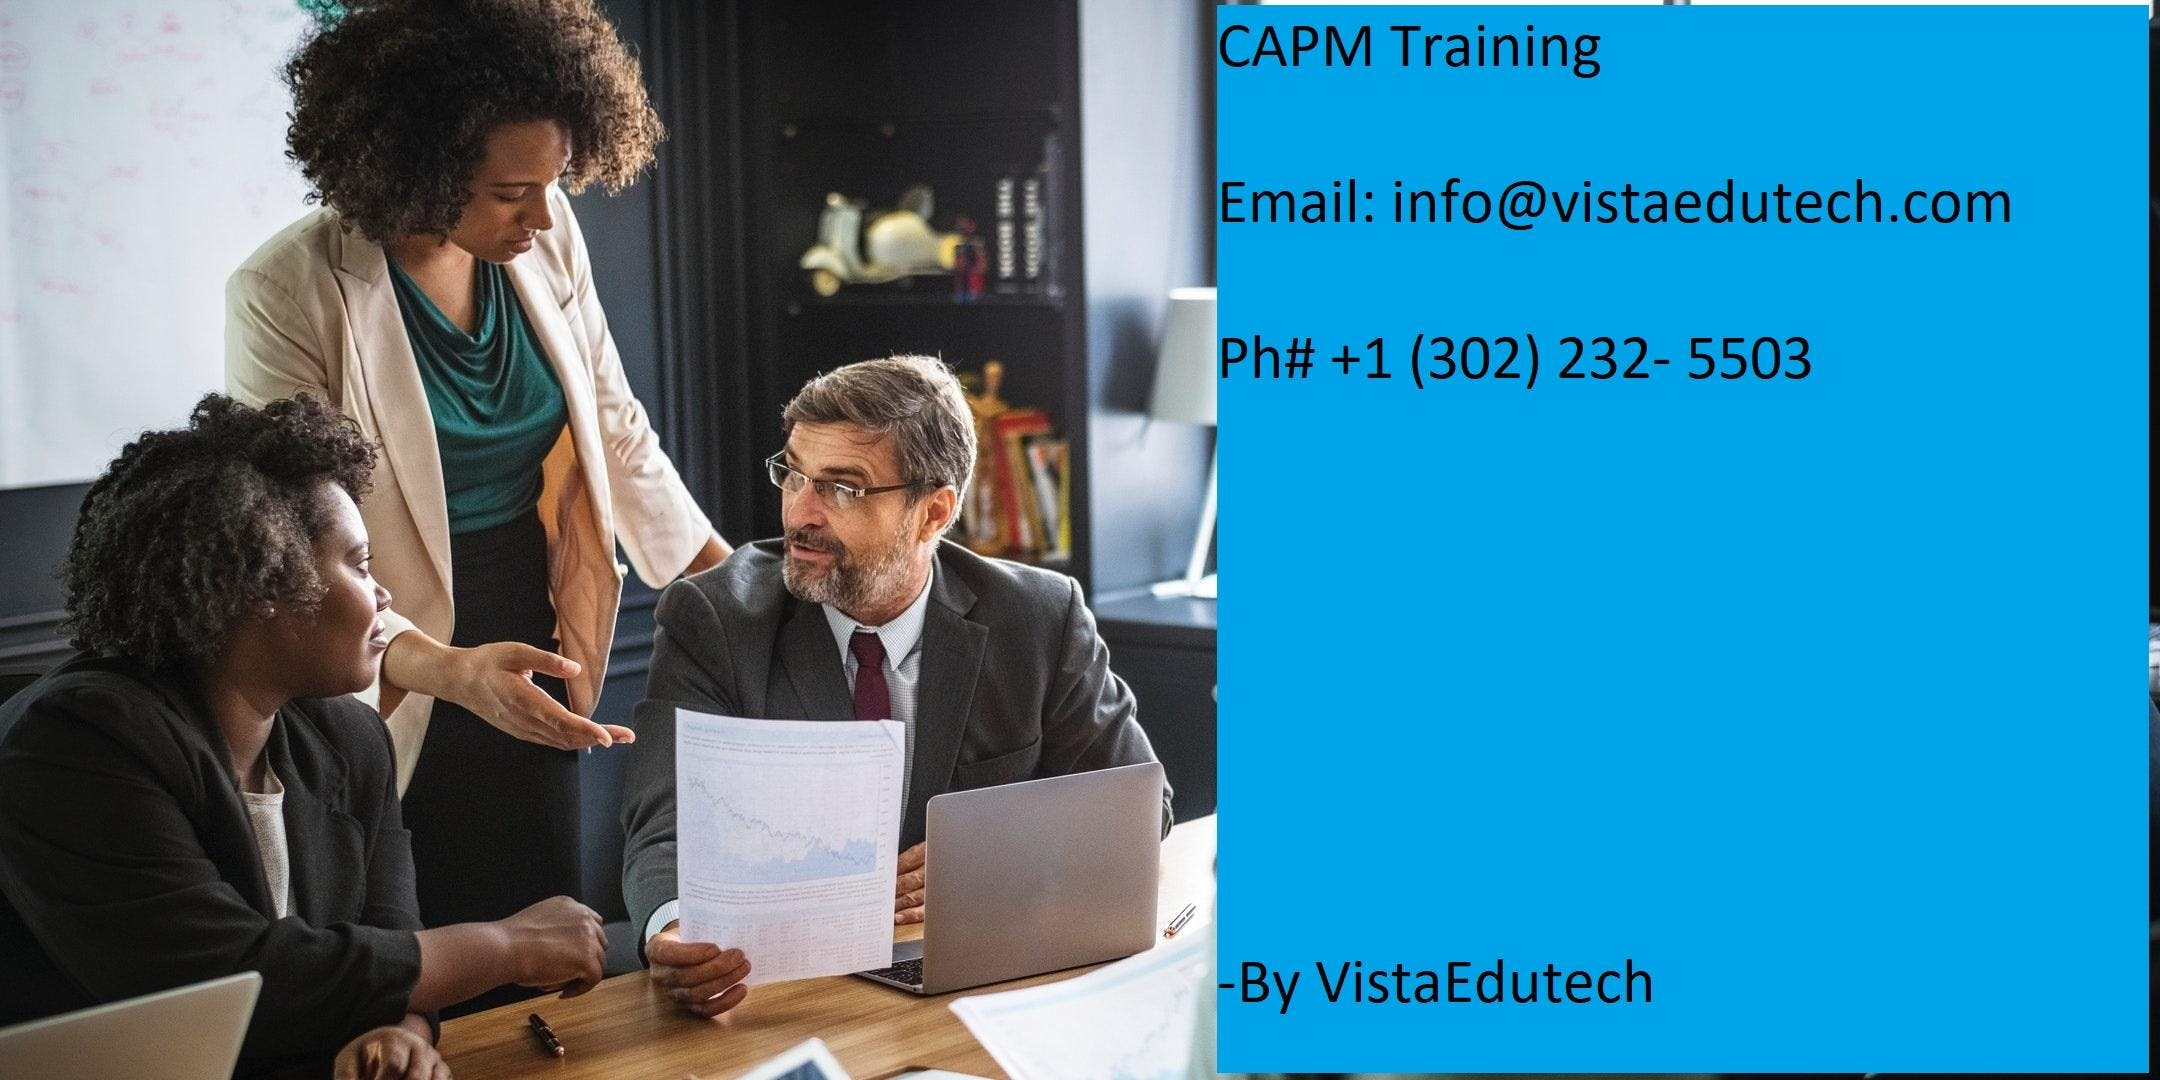 CAPM Classroom Training in Mount Vernon, NY